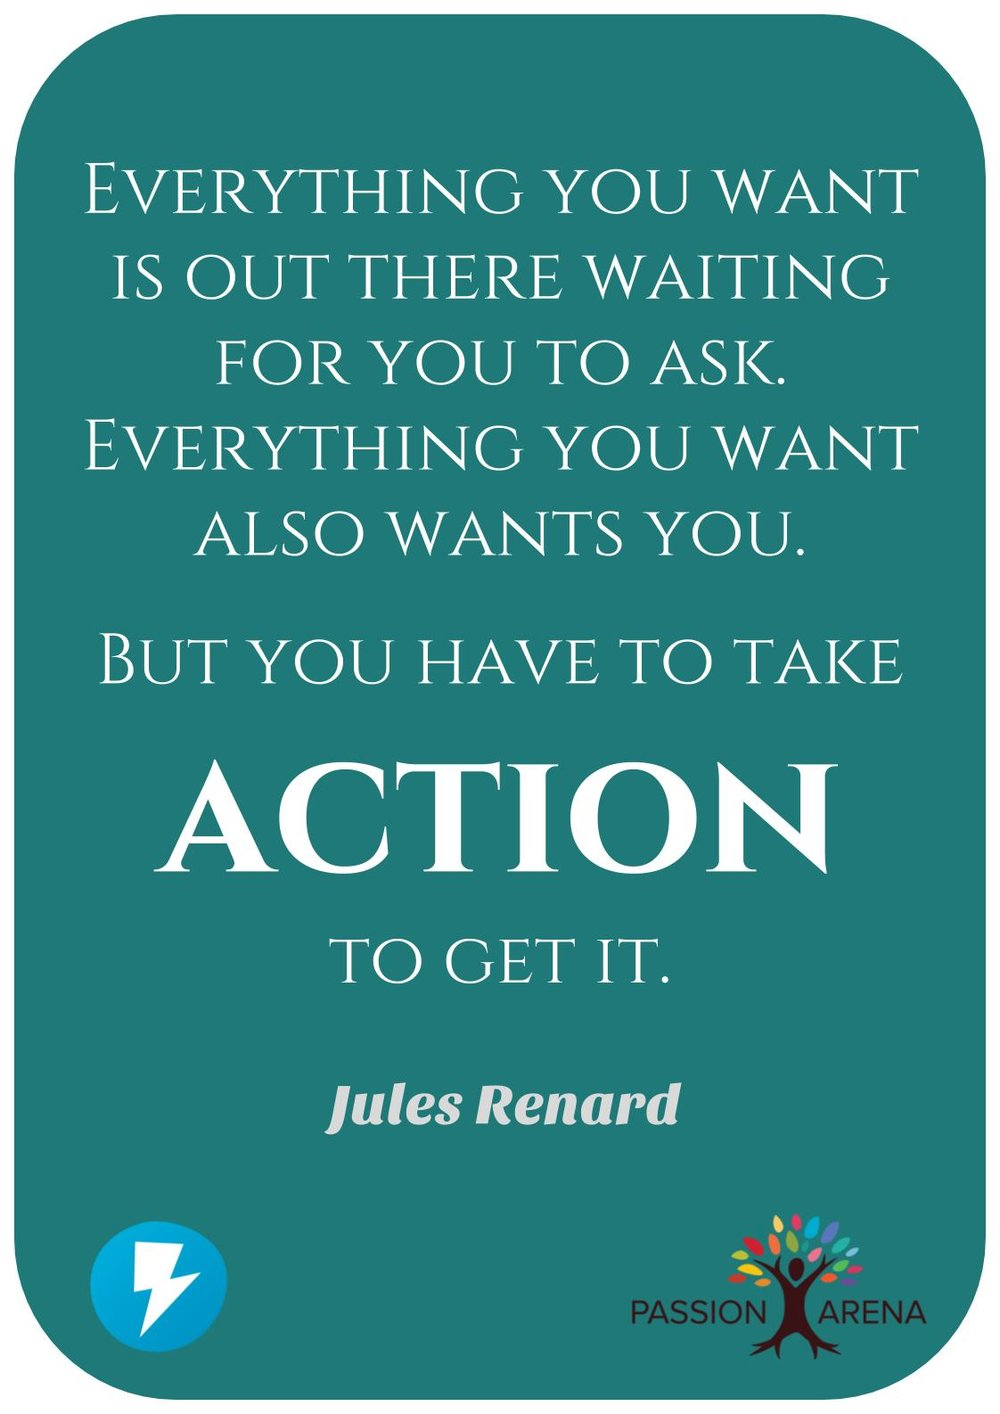 Intro-1-9. How good are you at taking action?